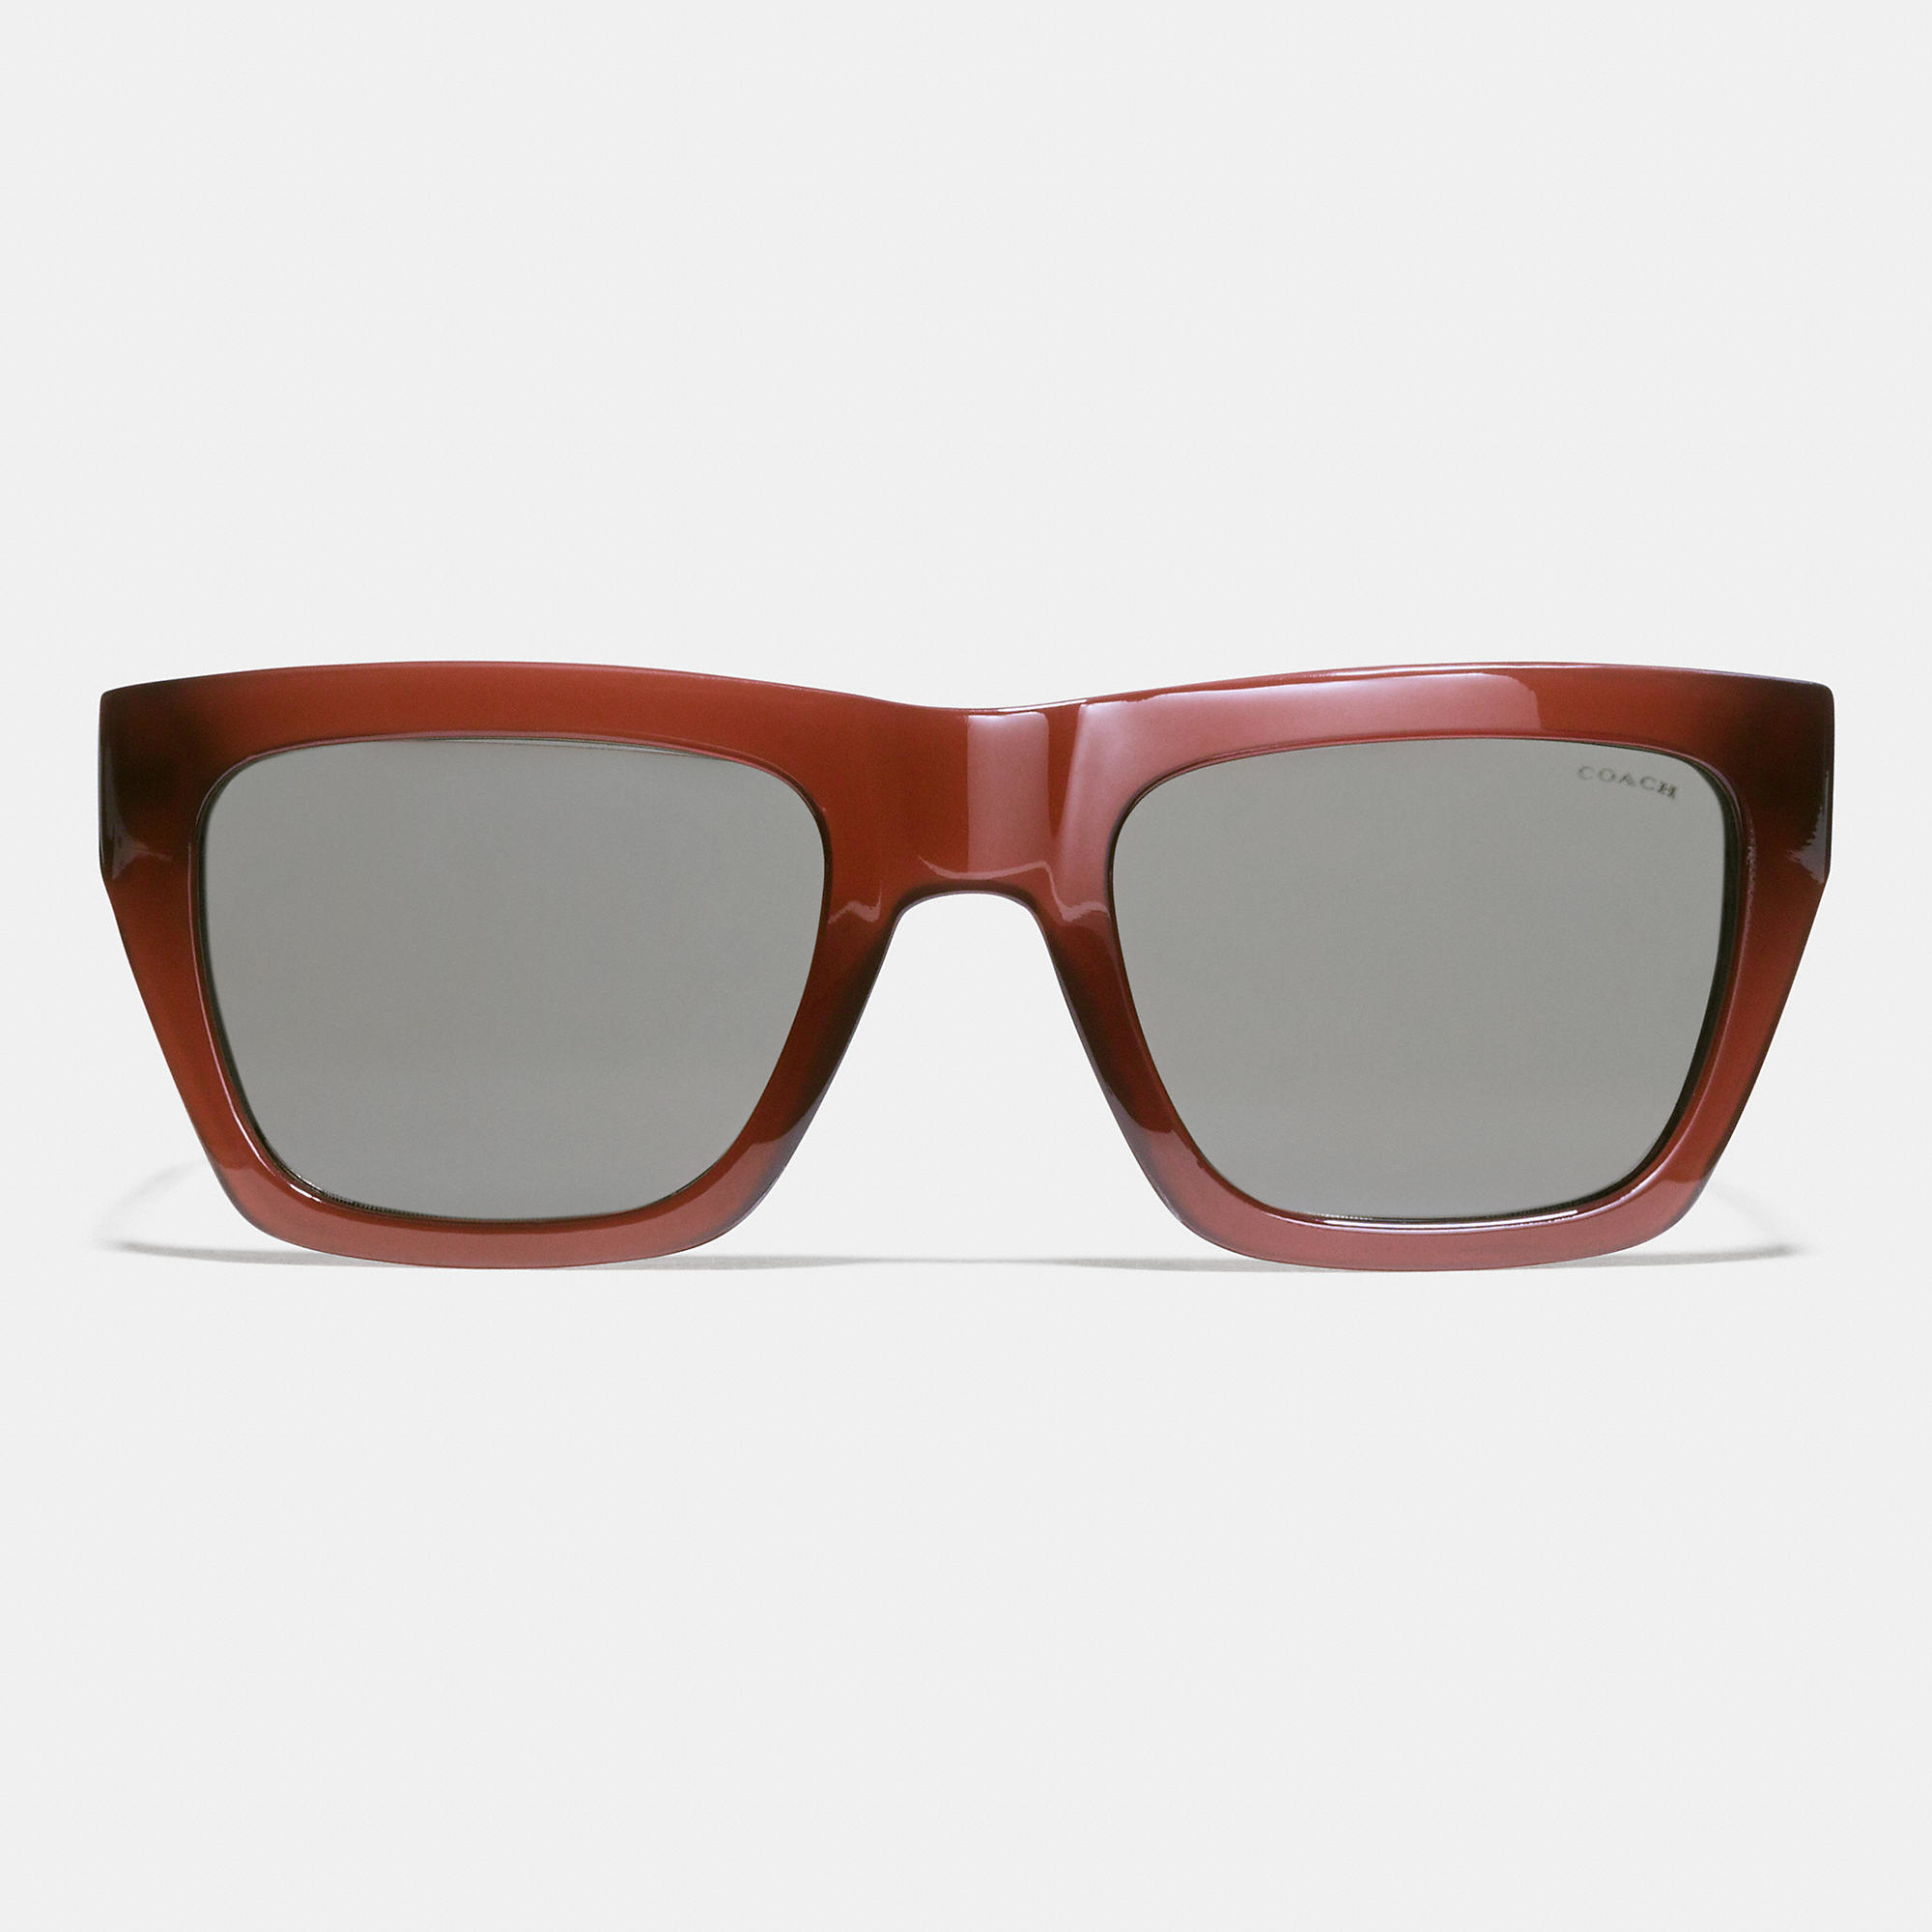 167558fc62 ... best price lyst coach commander sunglasses in red for men ac850 1215b